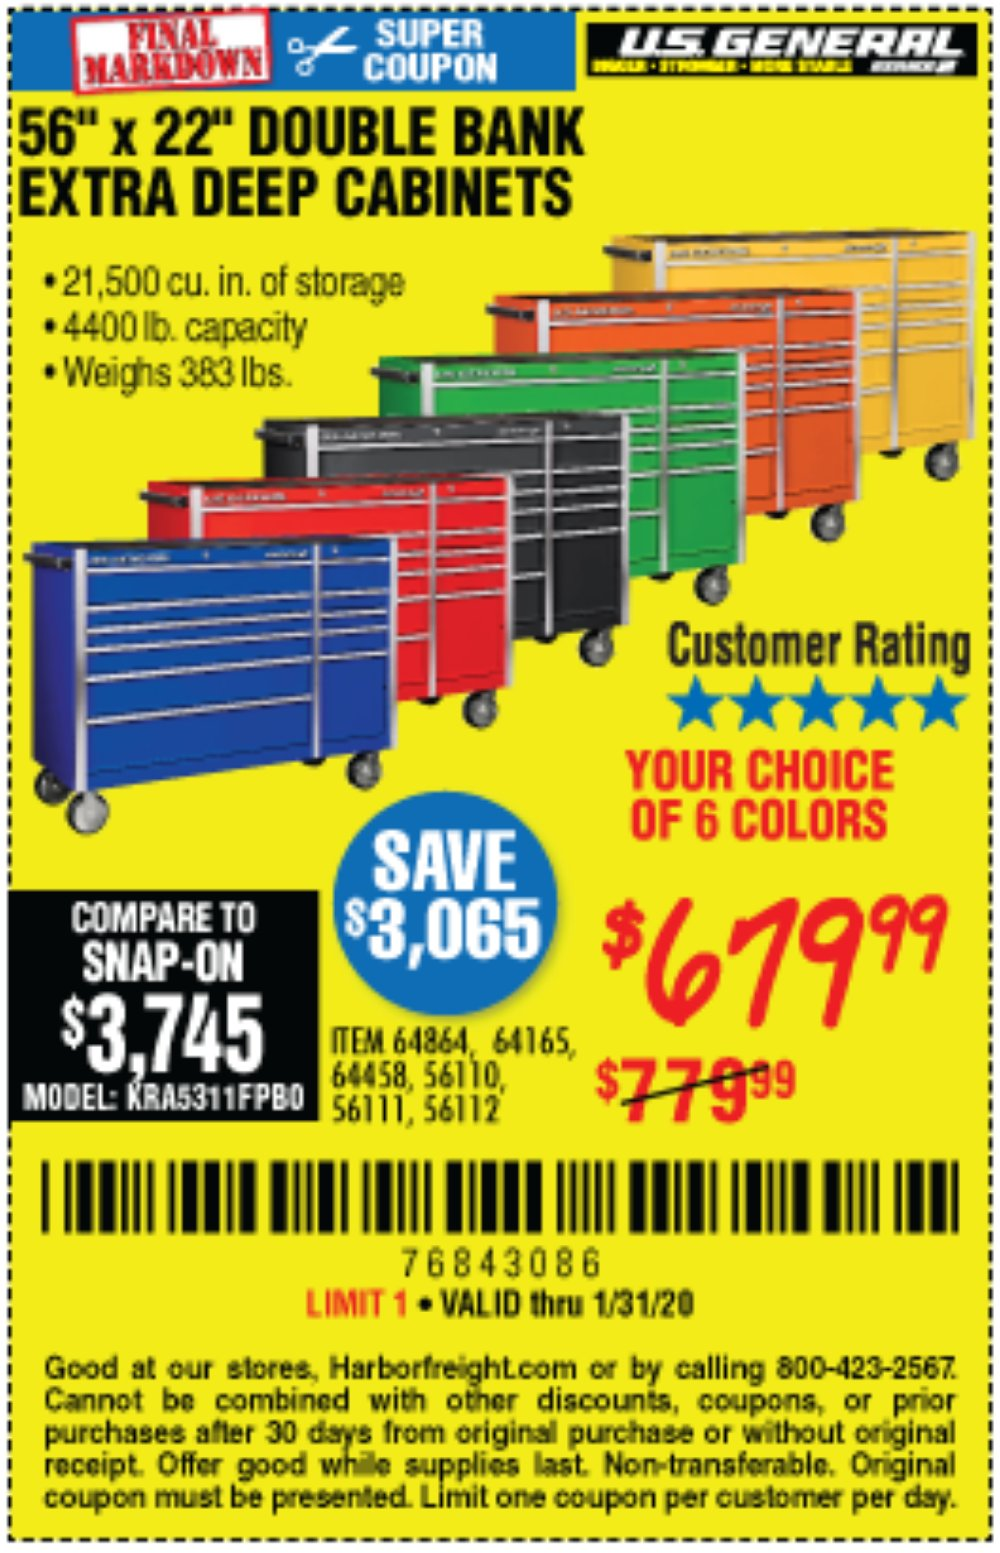 Harbor Freight Coupon, HF Coupons - 56